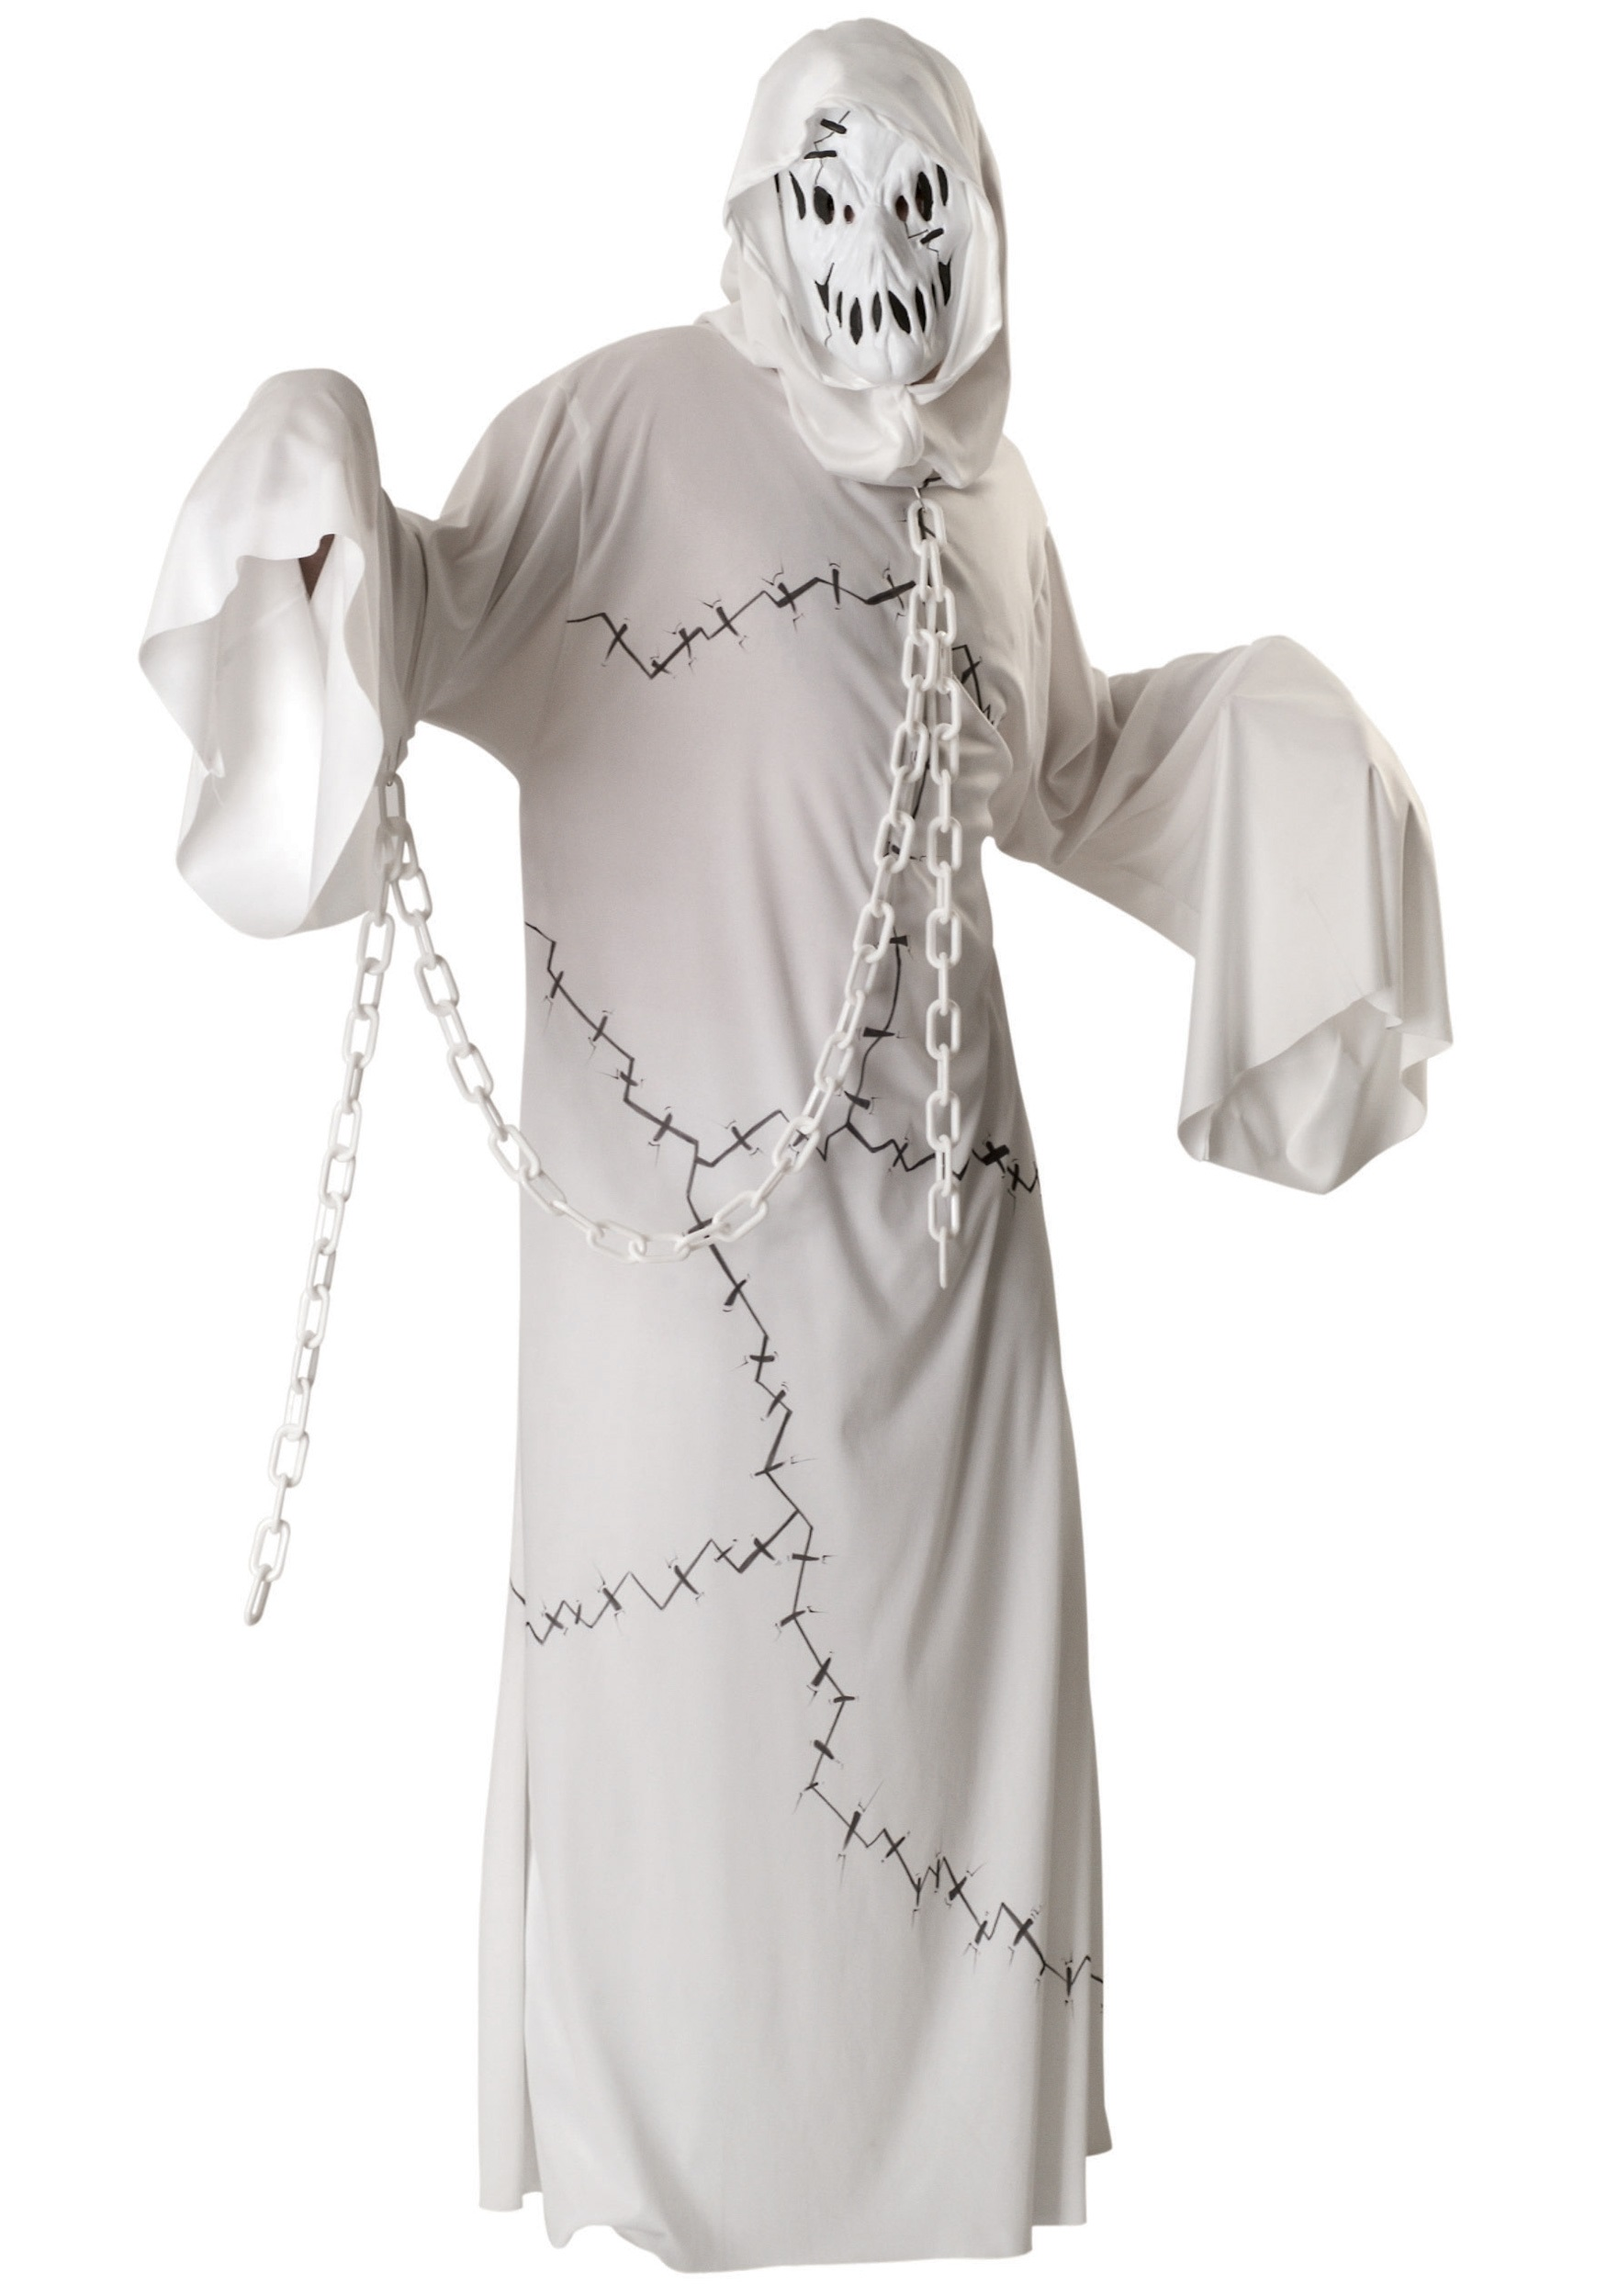 Cordial Spooky Ghost Costume Scary Halloween Costume Ideas Kids Scary Halloween Costumes Toddler Ghost Costume Amazon Children S Ghost Costumes Halloween baby Toddler Ghost Costume